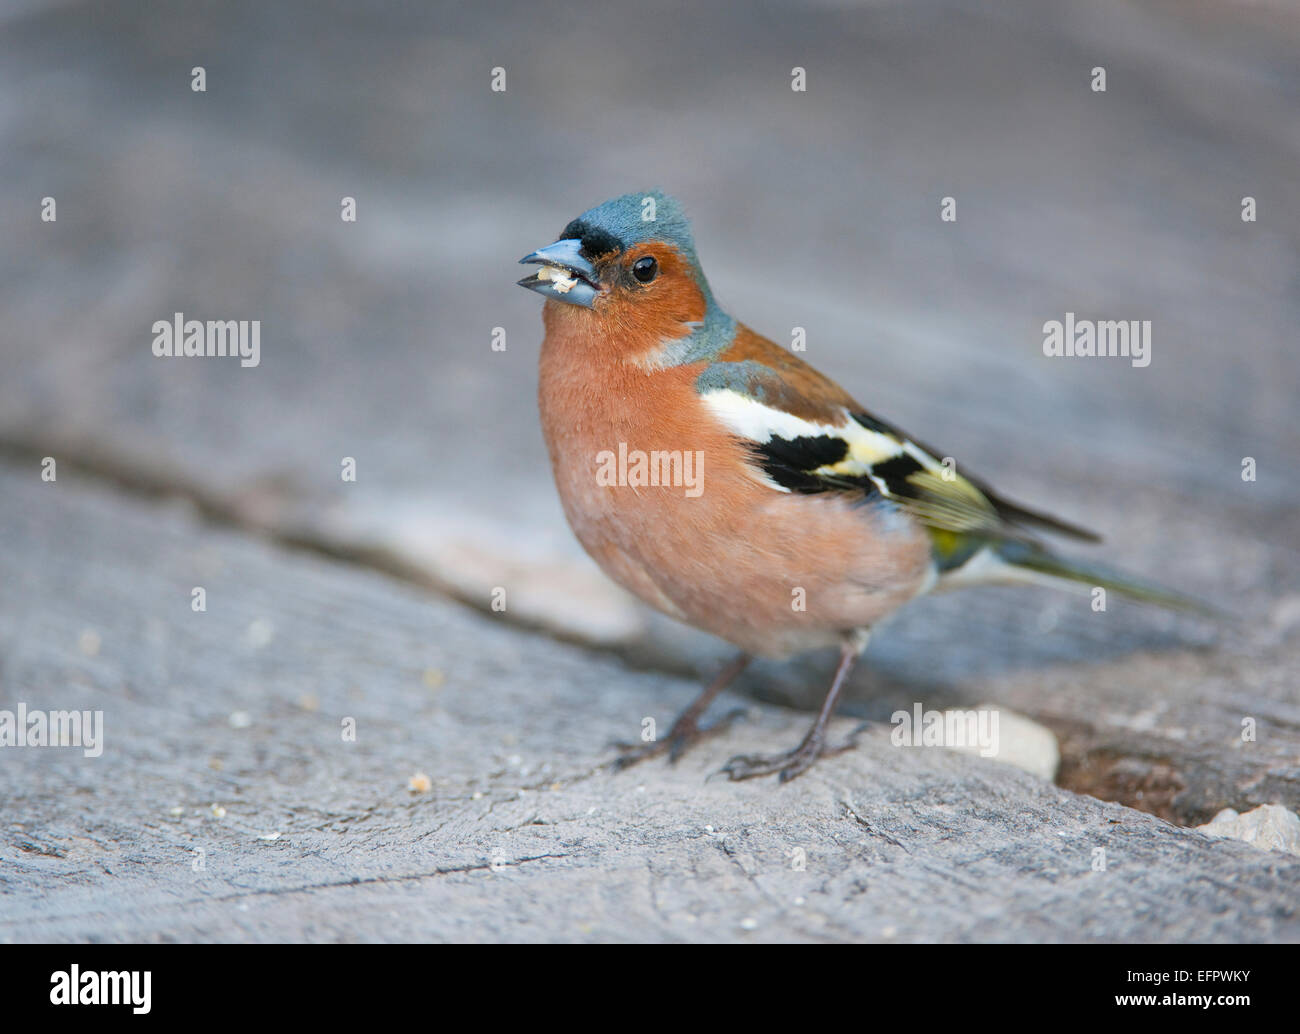 Chaffinch (Fringilla coelebs), male, feeding on a grain of maize, Bavaria, Germany - Stock Image